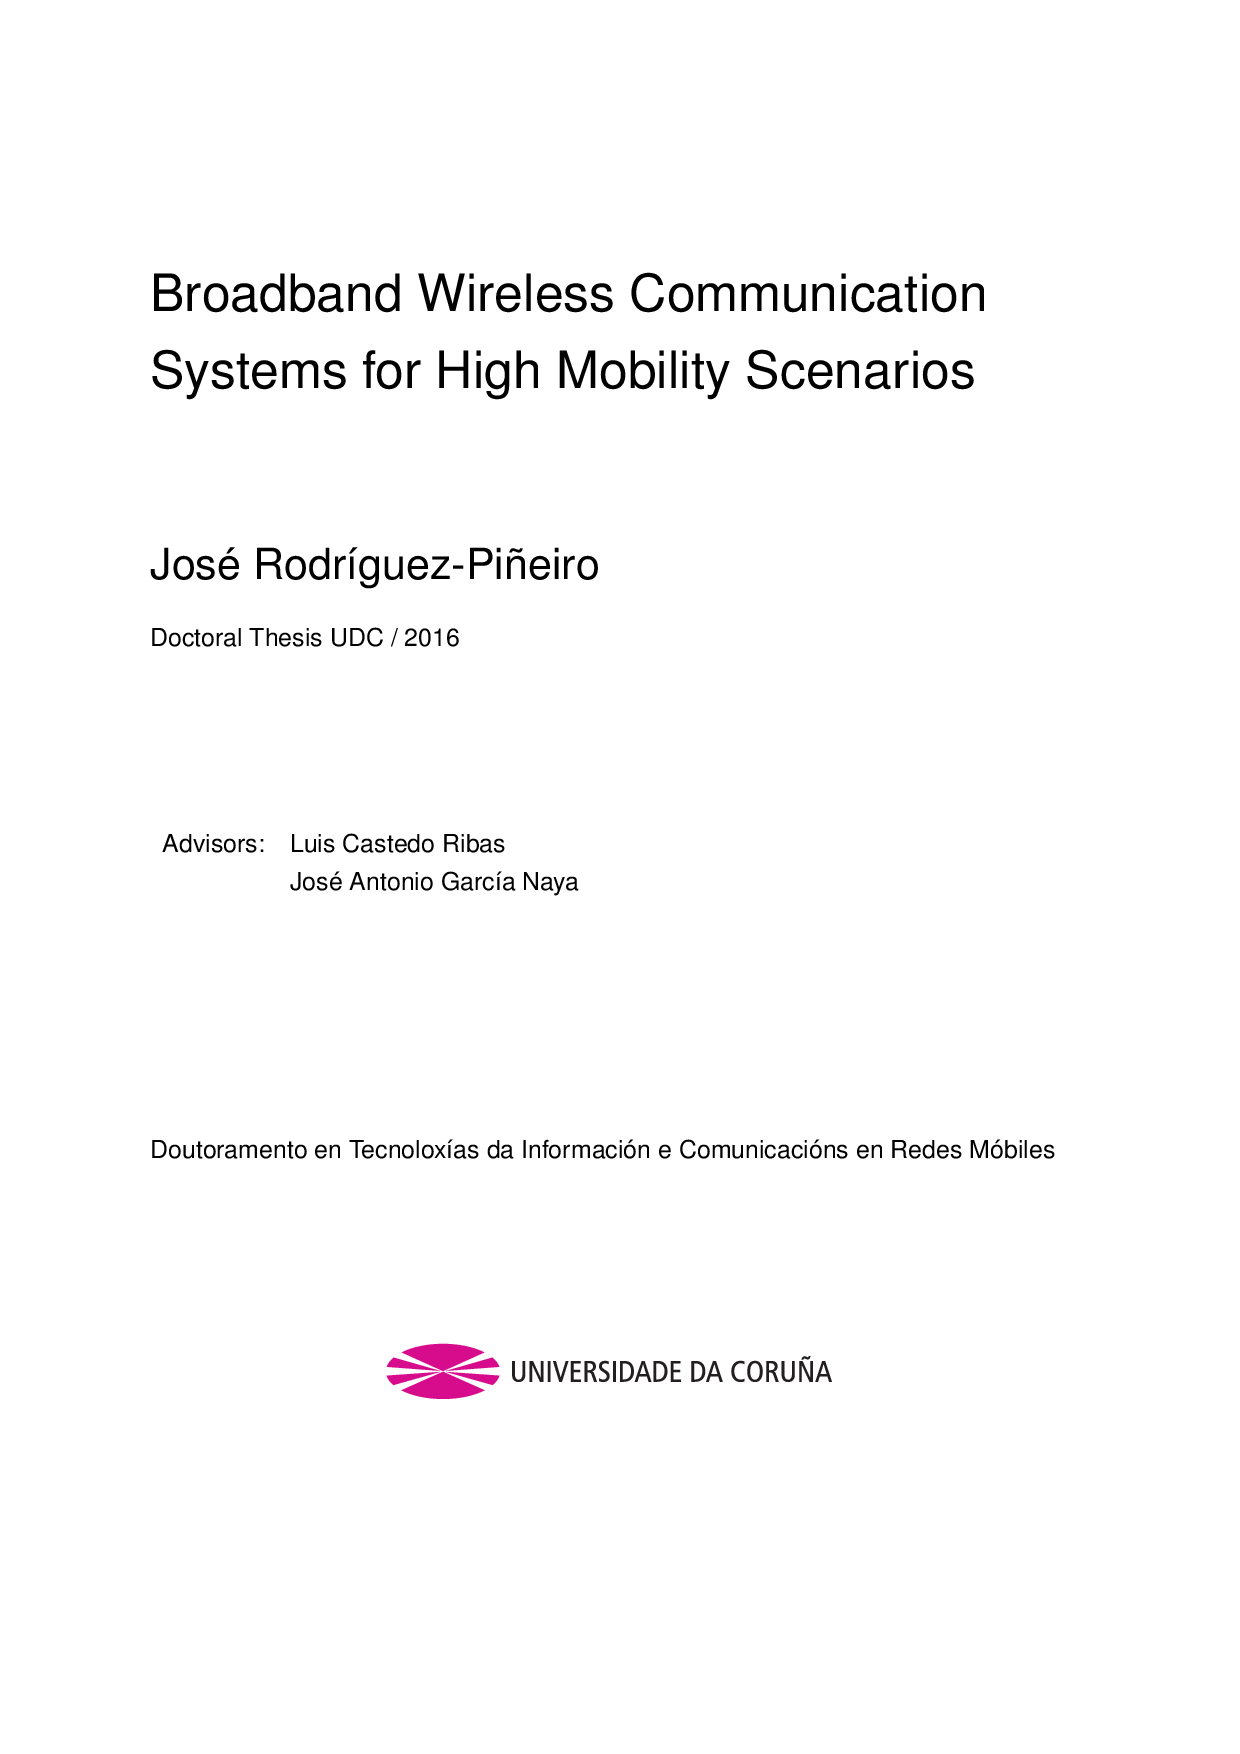 Broadband Wireless Communication Systems for High Mobility ...